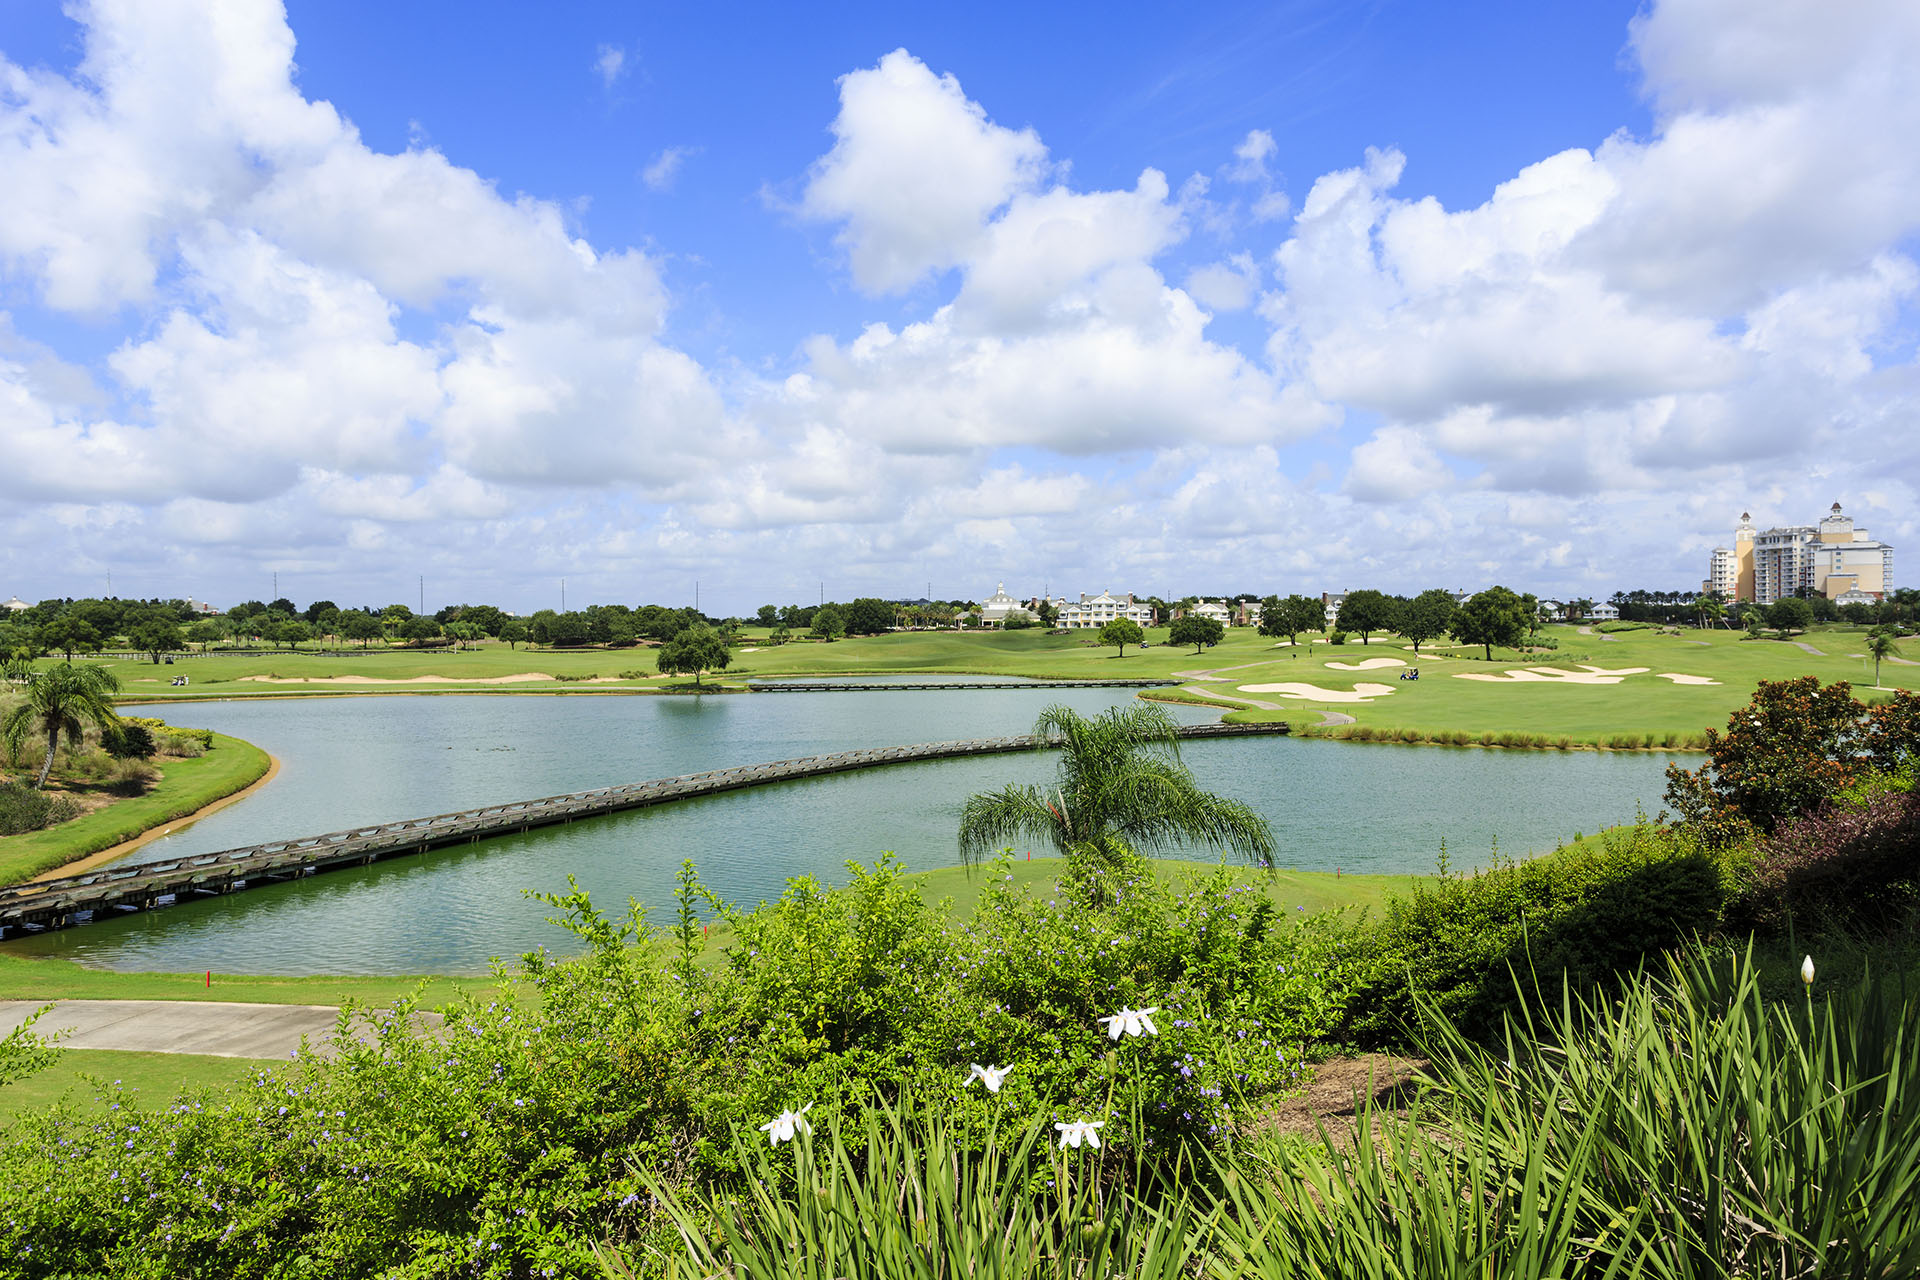 Spend a luxury golf vacation at Reunion Resort with the best courses in Central Florida